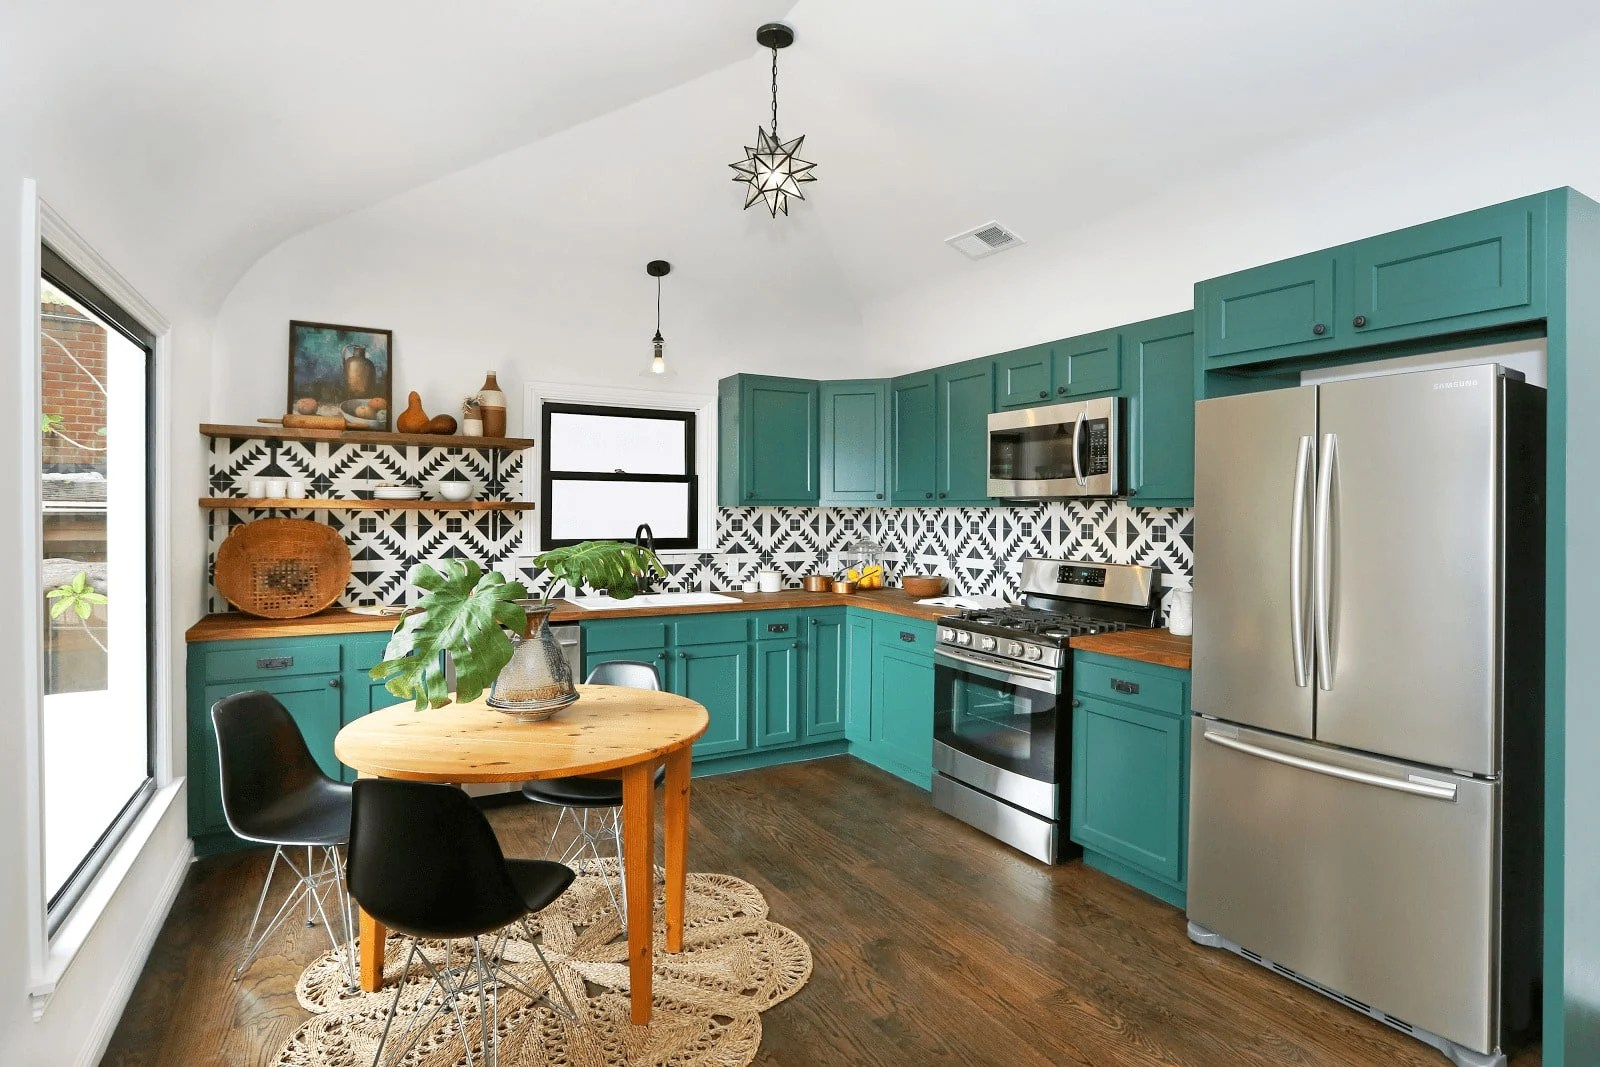 Trendy kitchen with green cabinets